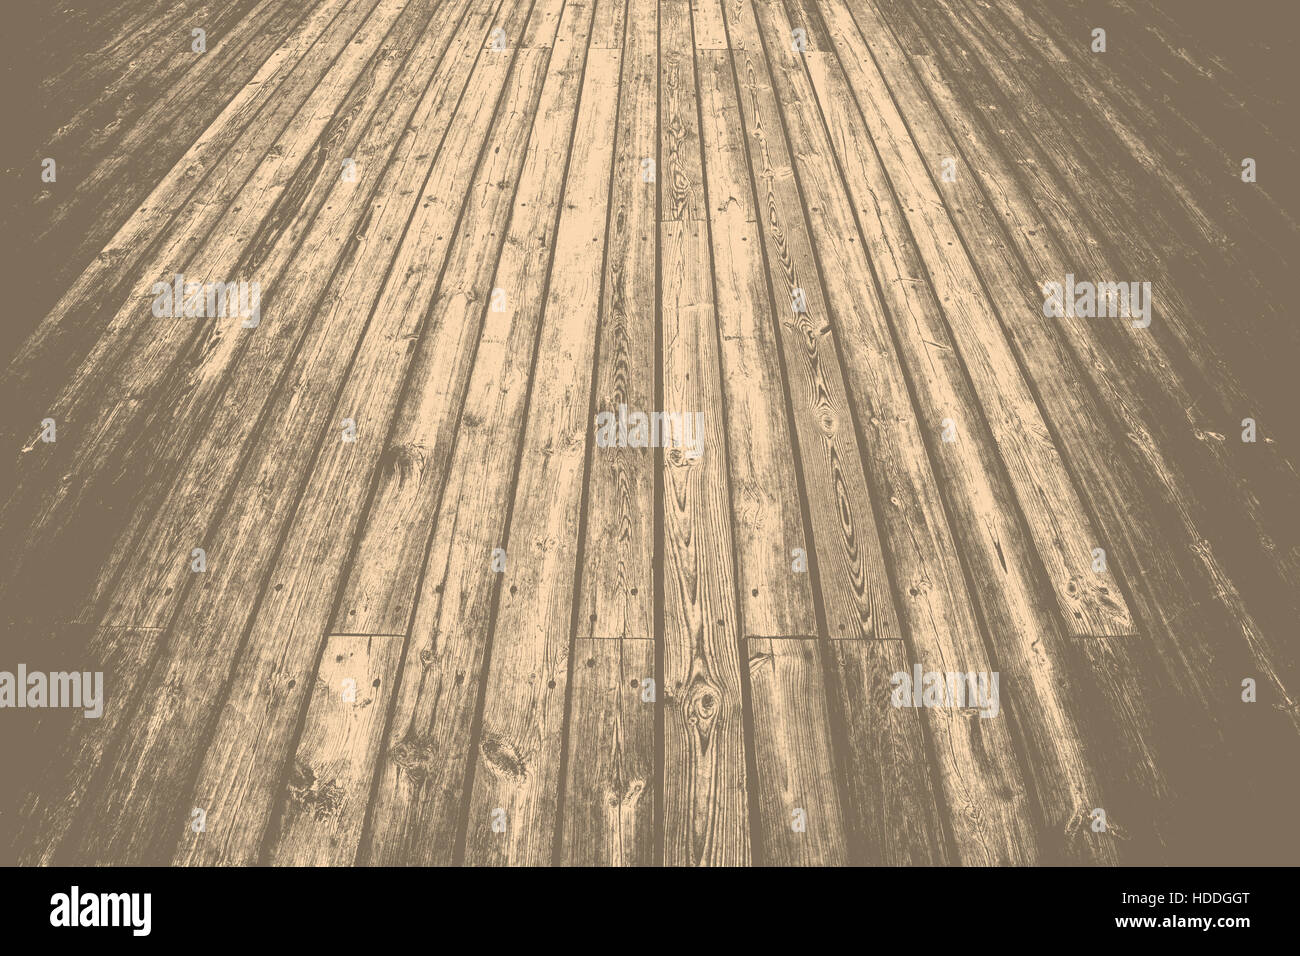 Grunge wooden planks background - layer for photo editor. - Stock Image